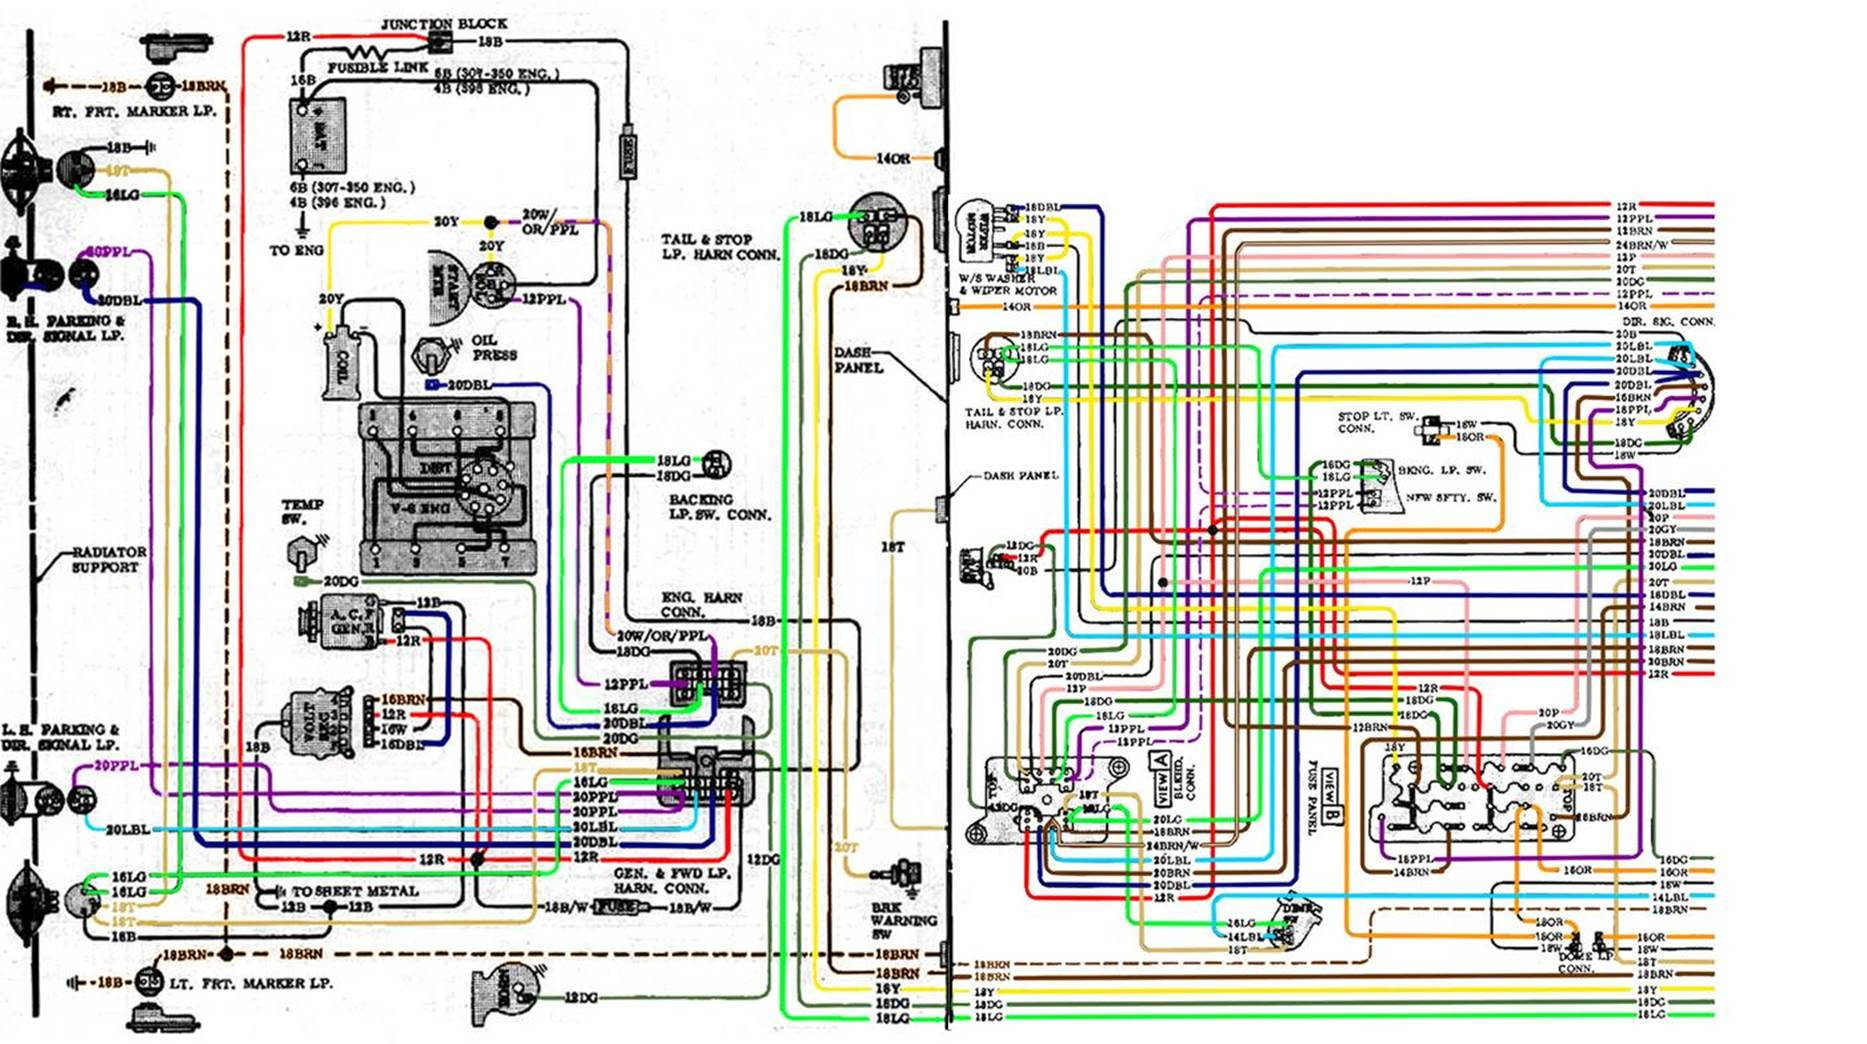 image002 67 72 chevy wiring diagram 69 chevelle dash wiring diagram at edmiracle.co